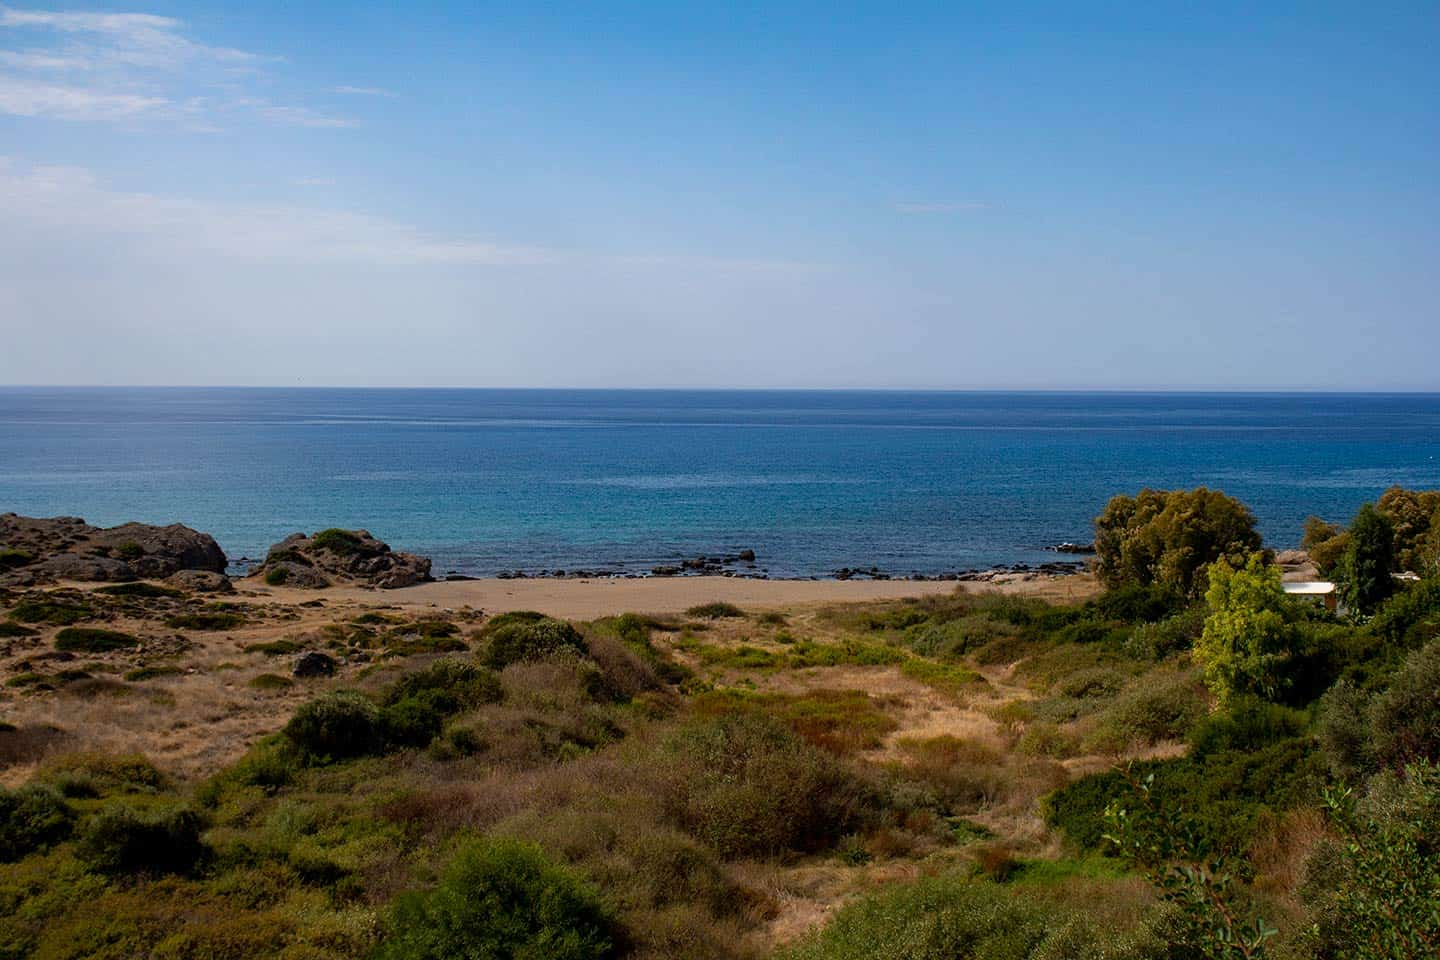 Image of the small beach at Falassarna Crete Greece